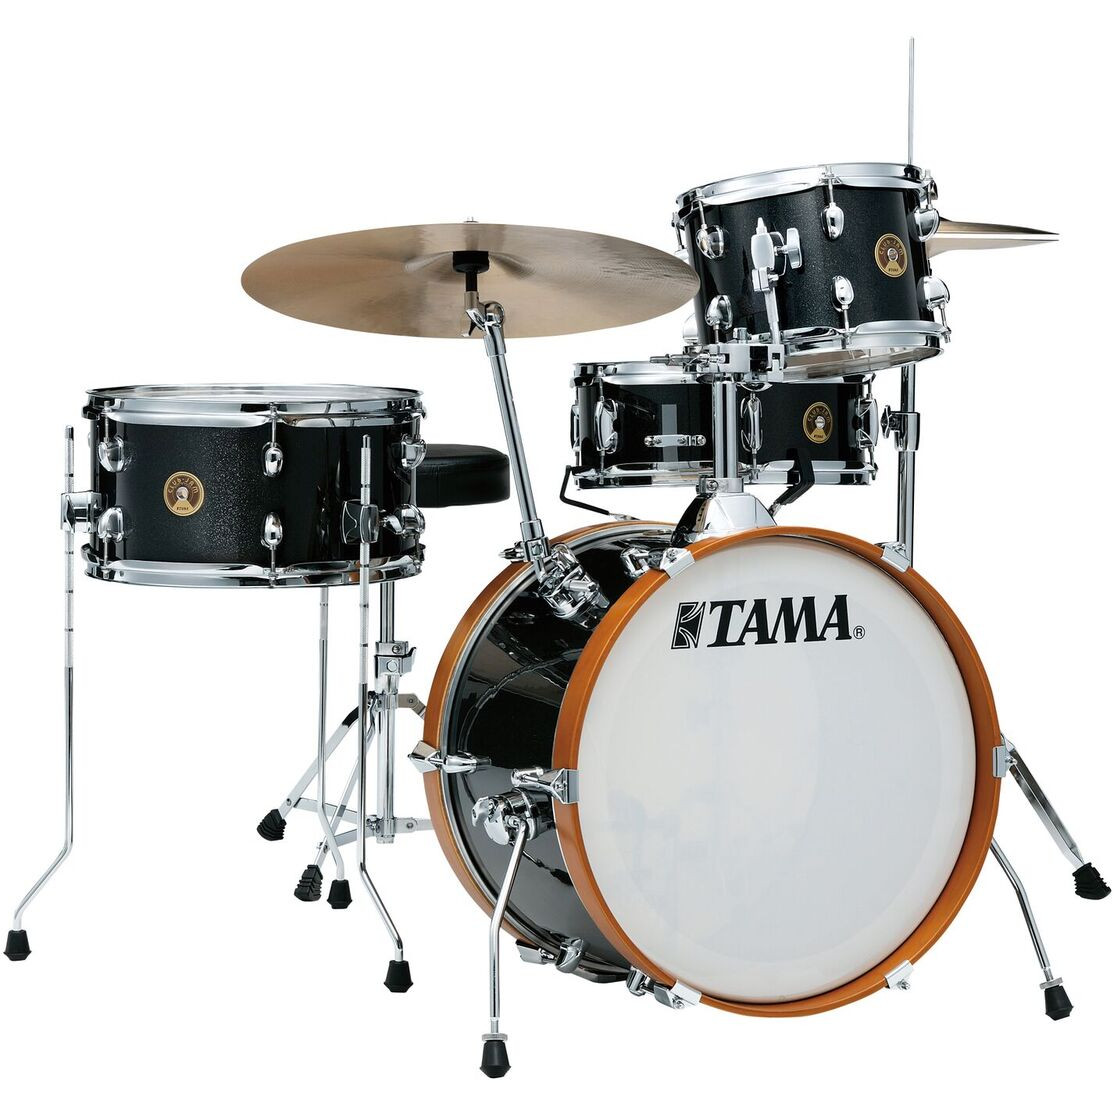 Tama LJK48S CCM Club Jam Charcoal Mist 4 piece shell set